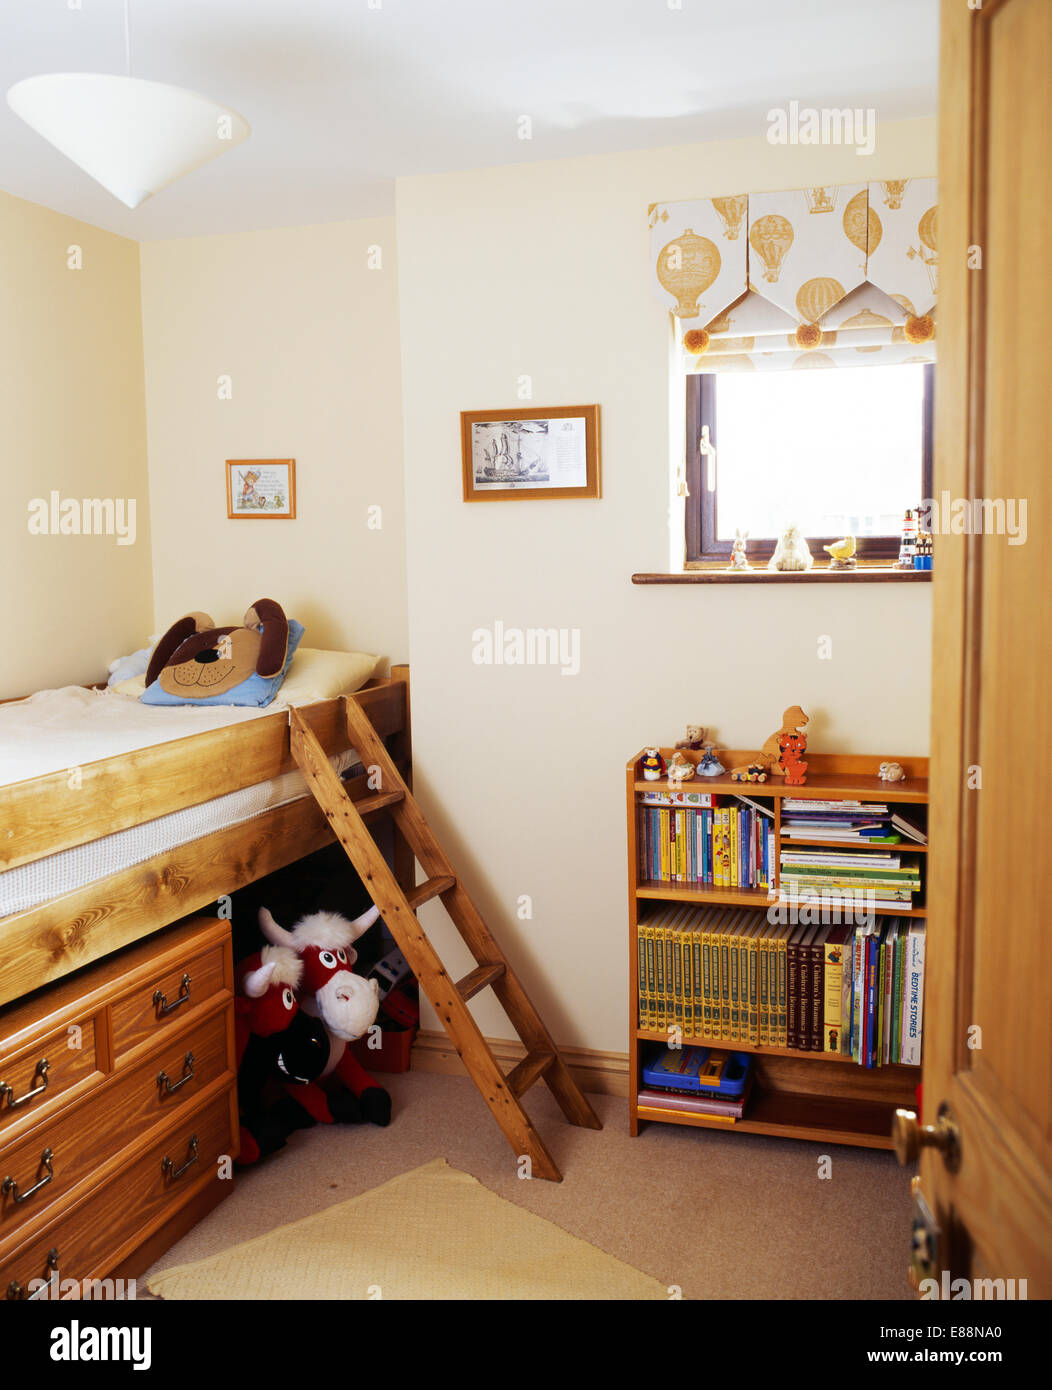 Small wooden ladder to platform bed with under-bed storage drawers in childu0027s bedroom with wooden shelving & Small wooden ladder to platform bed with under-bed storage drawers ...